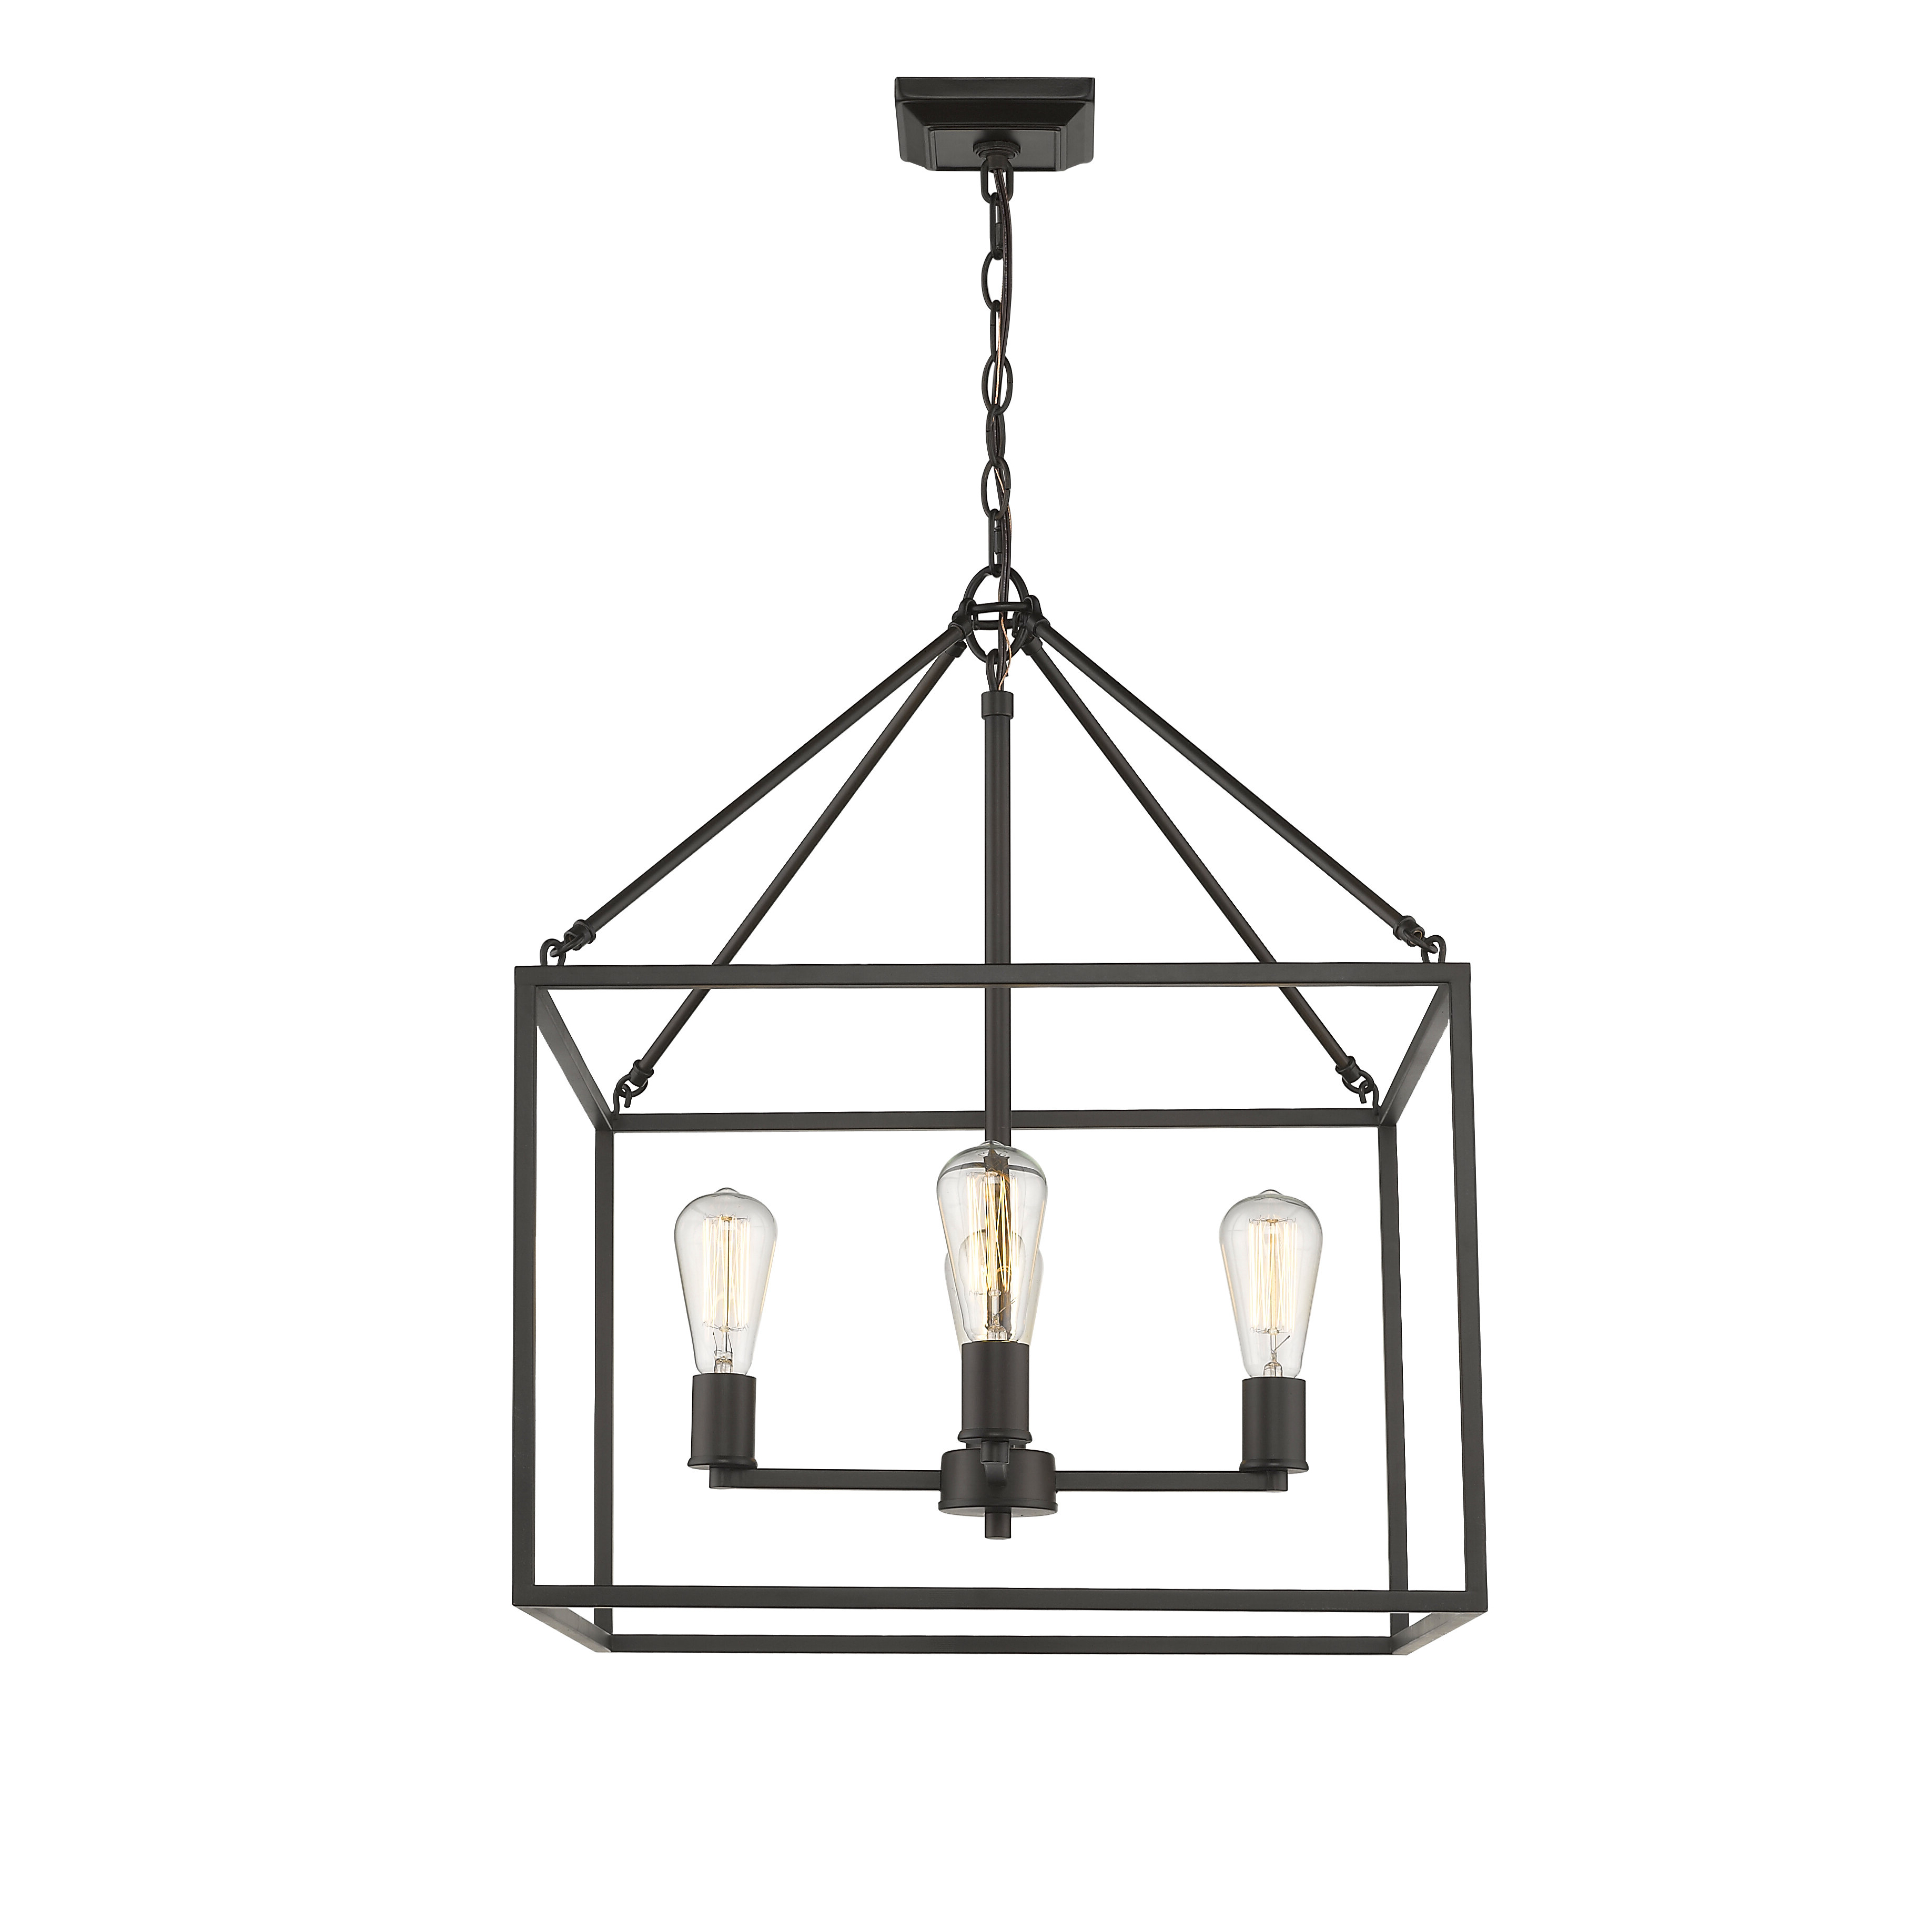 Odie 8 Light Lantern Square / Rectangle Pendants With Regard To Latest Zabel 4 Light Lantern Square / Rectangle Pendant (View 15 of 25)